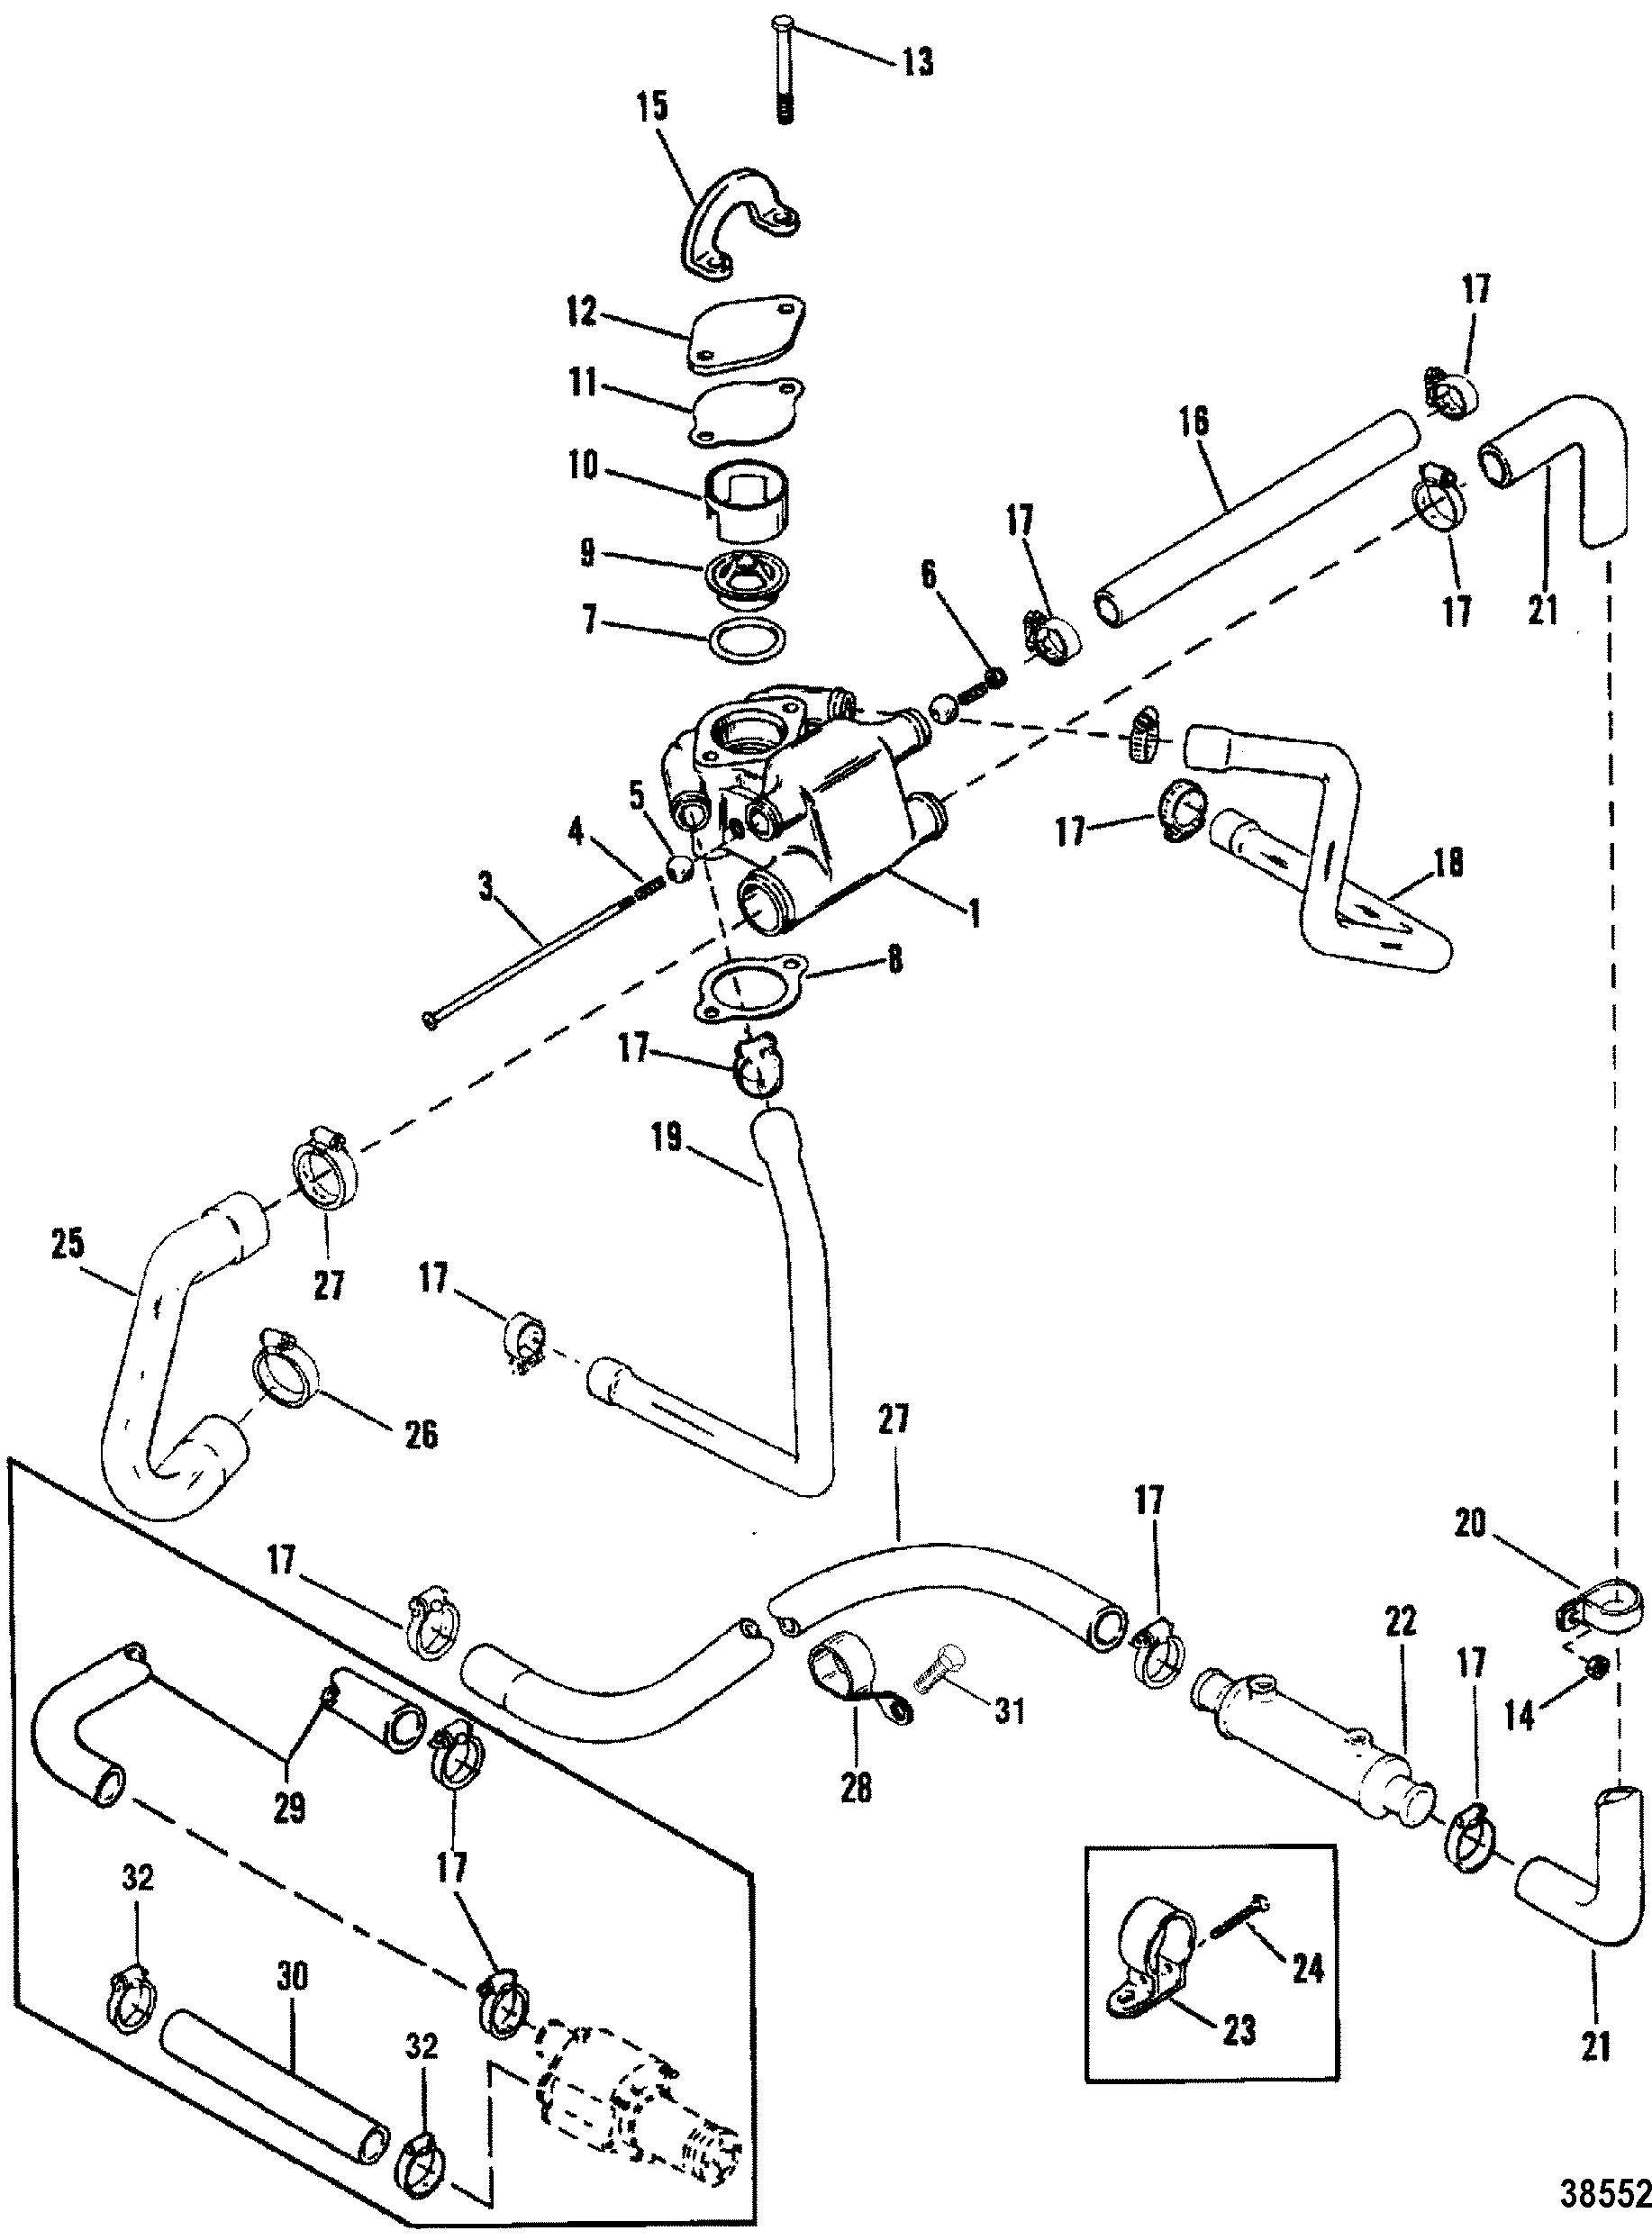 Show product likewise Show product together with Standard Cooling System 7 Point Drain further 1997 7 3l Engine Diagram as well Show product. on mercruiser power steering hose